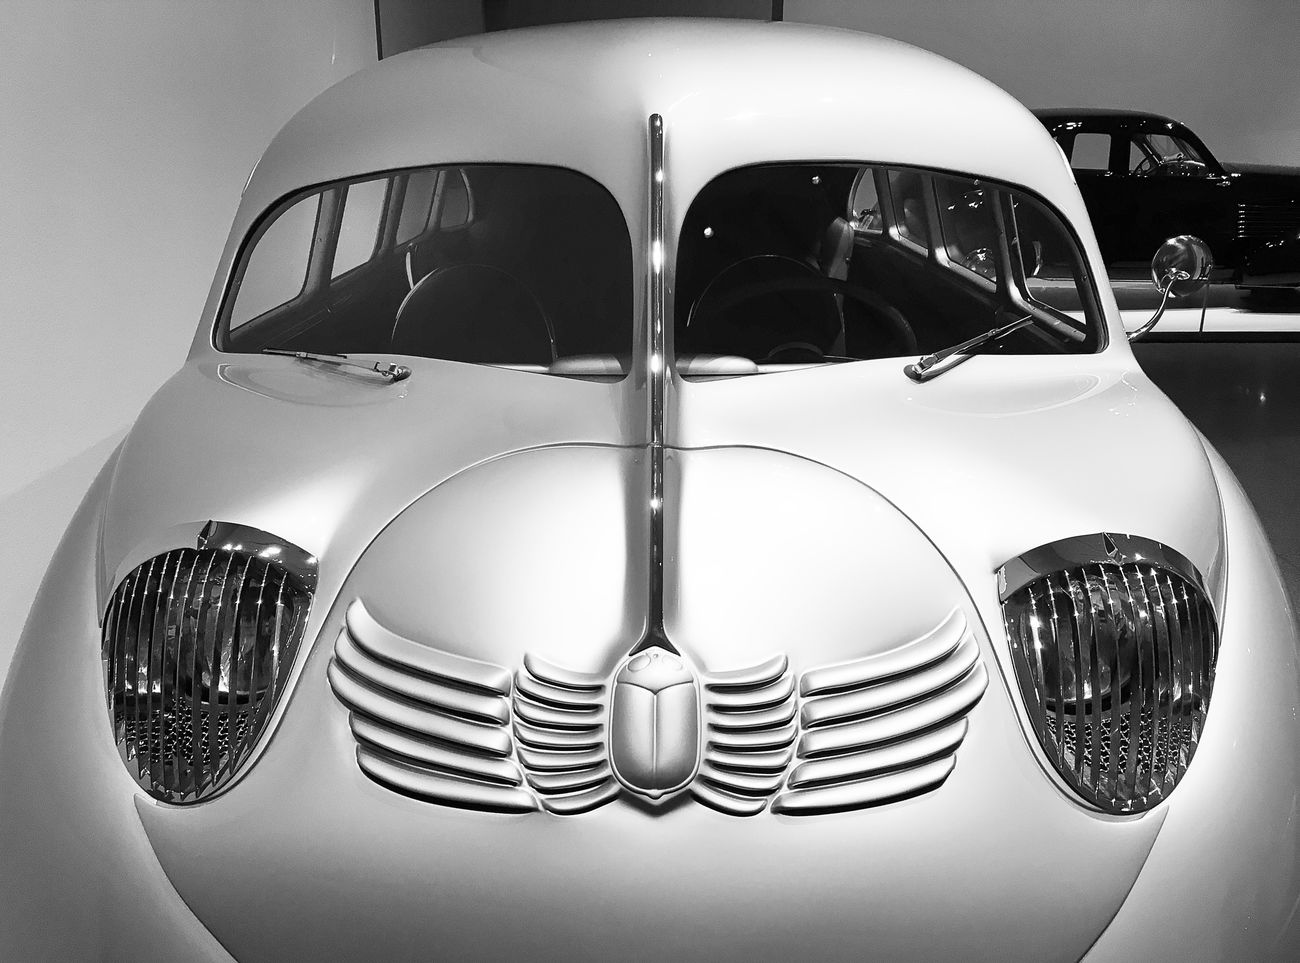 Transportation Car Mode Of Transport Old-fashioned Sculpted Vintage Car Automobile Retro Car Industrial Design Streamlined Classic Art Deco Art Deco Design Sculpted Metal Sculpted In Steel Museum Piece Retro Scarab EyeEmNewHere EyeEm Best Shots Chrome Retro Style Collector's Car Silver  Retro Styled